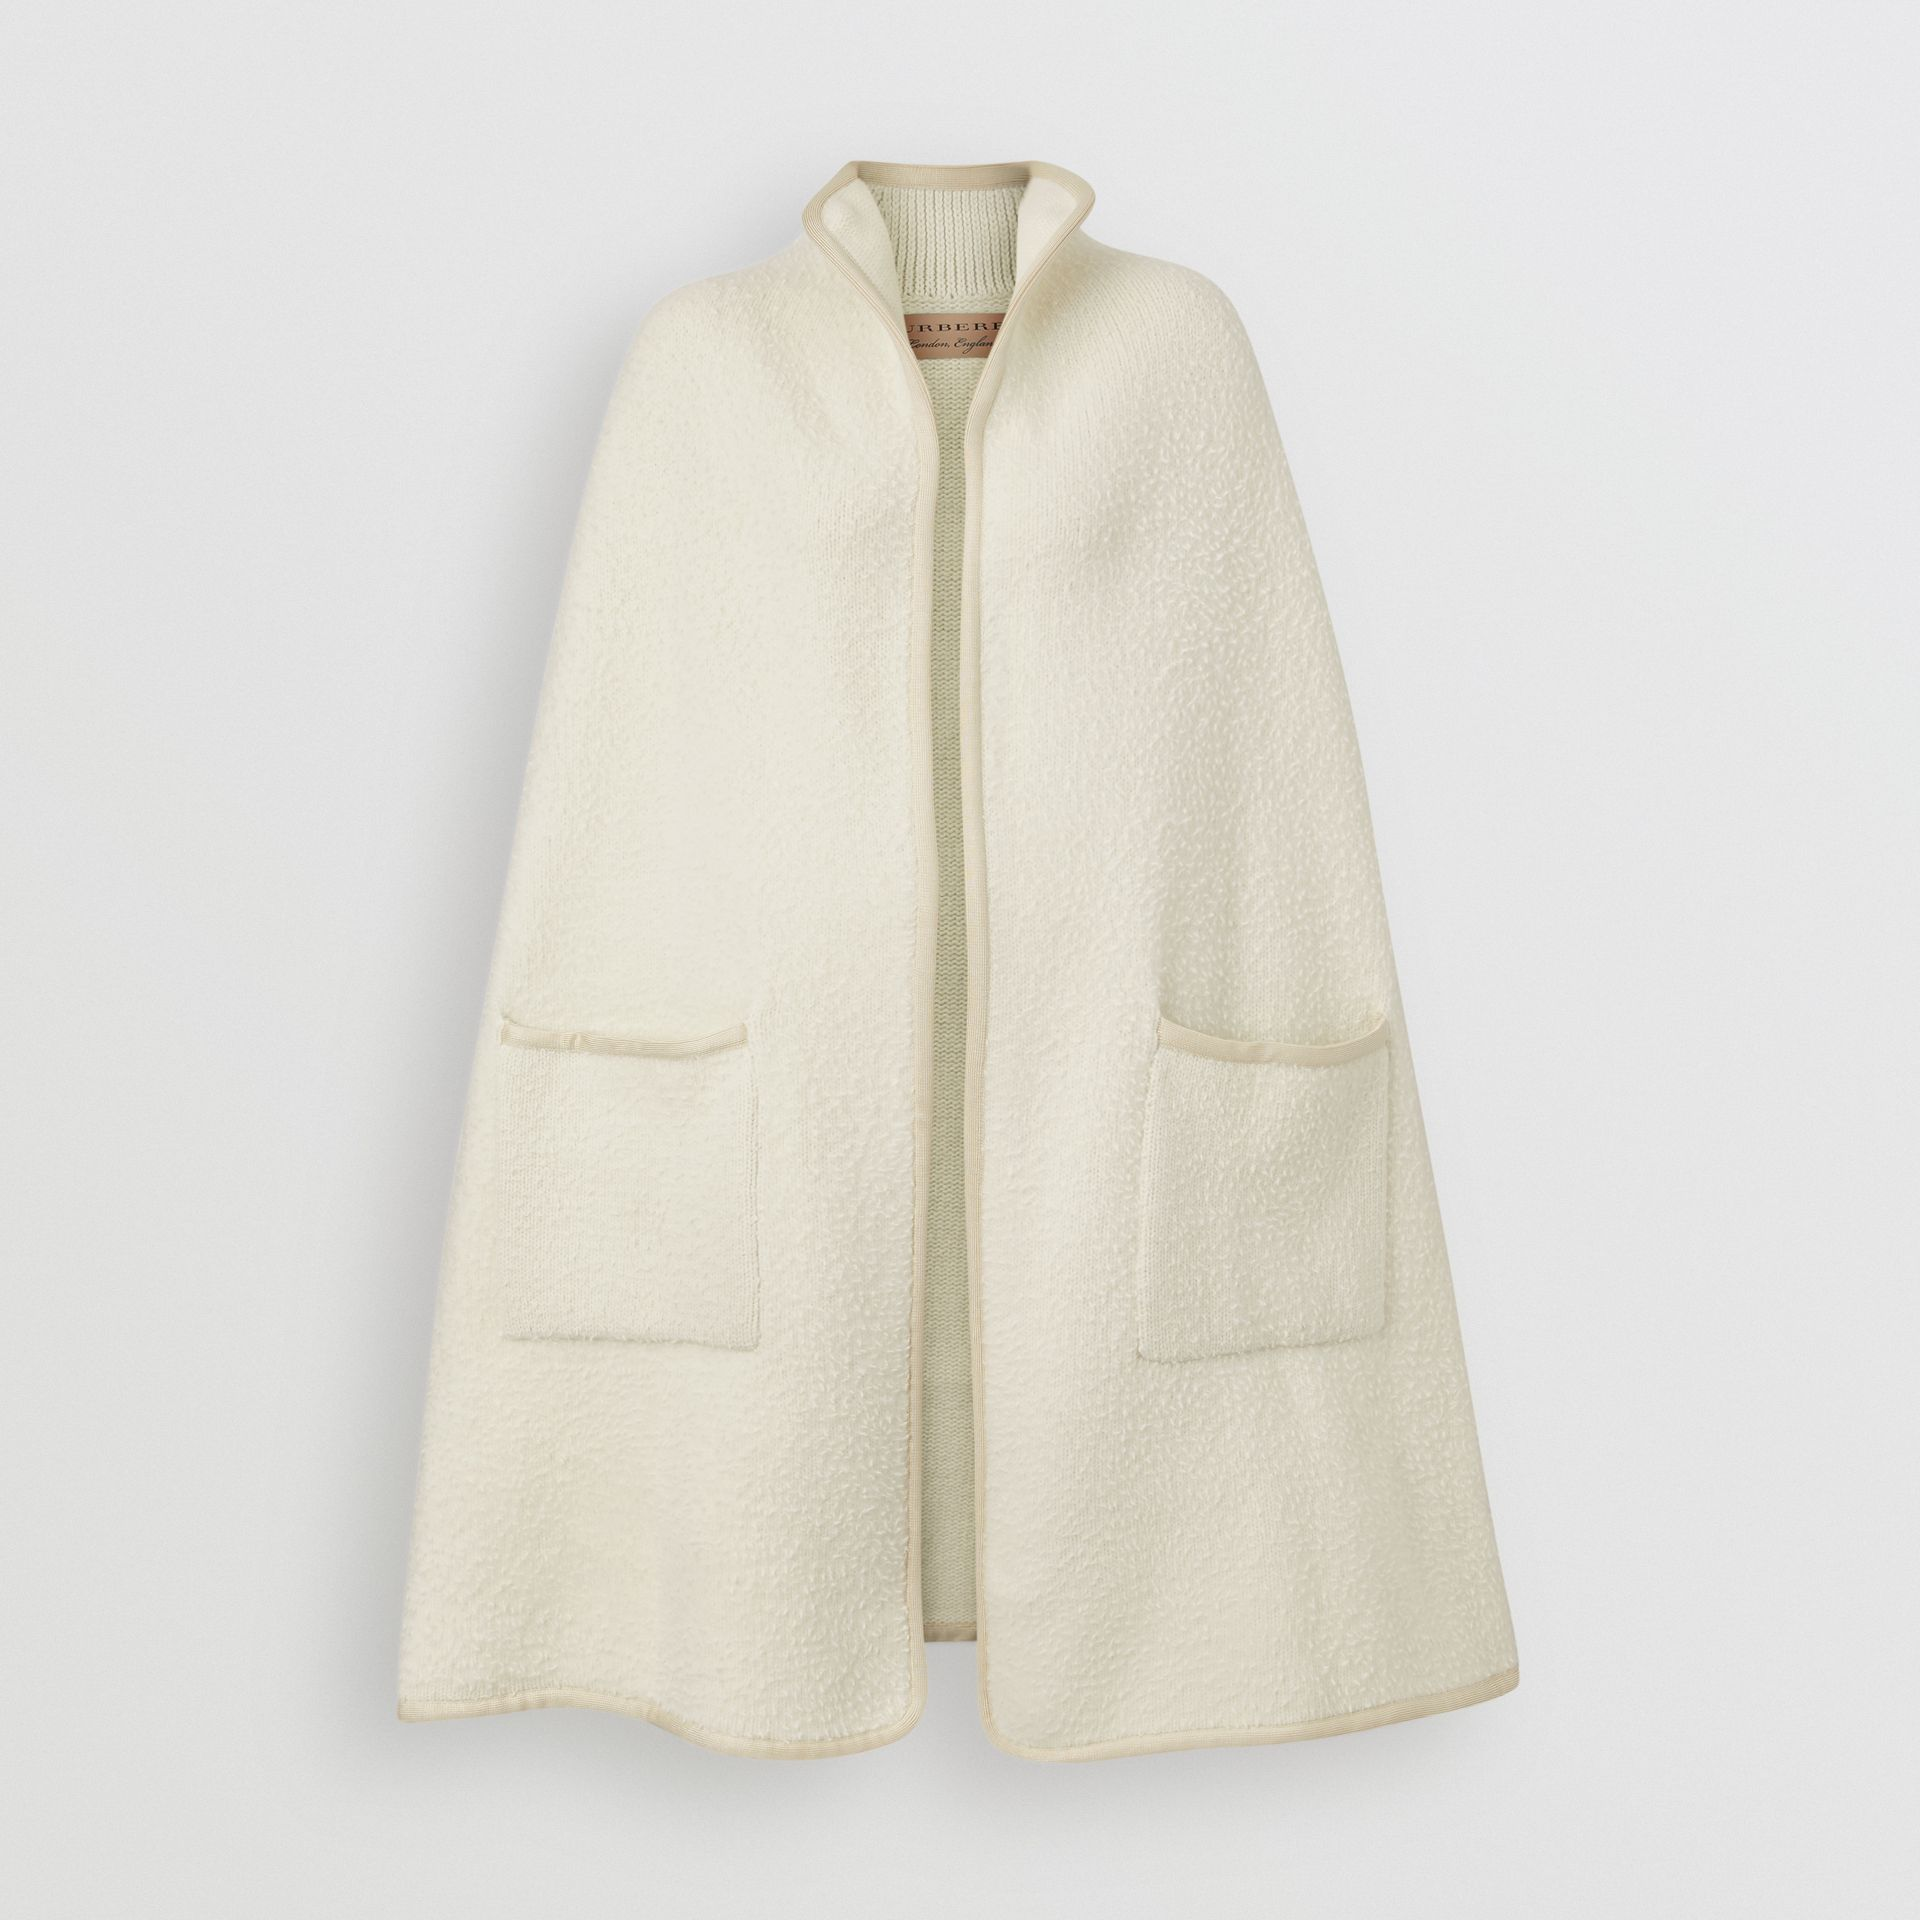 Wool Fleece Cape in Ivory - Women | Burberry Canada - gallery image 3